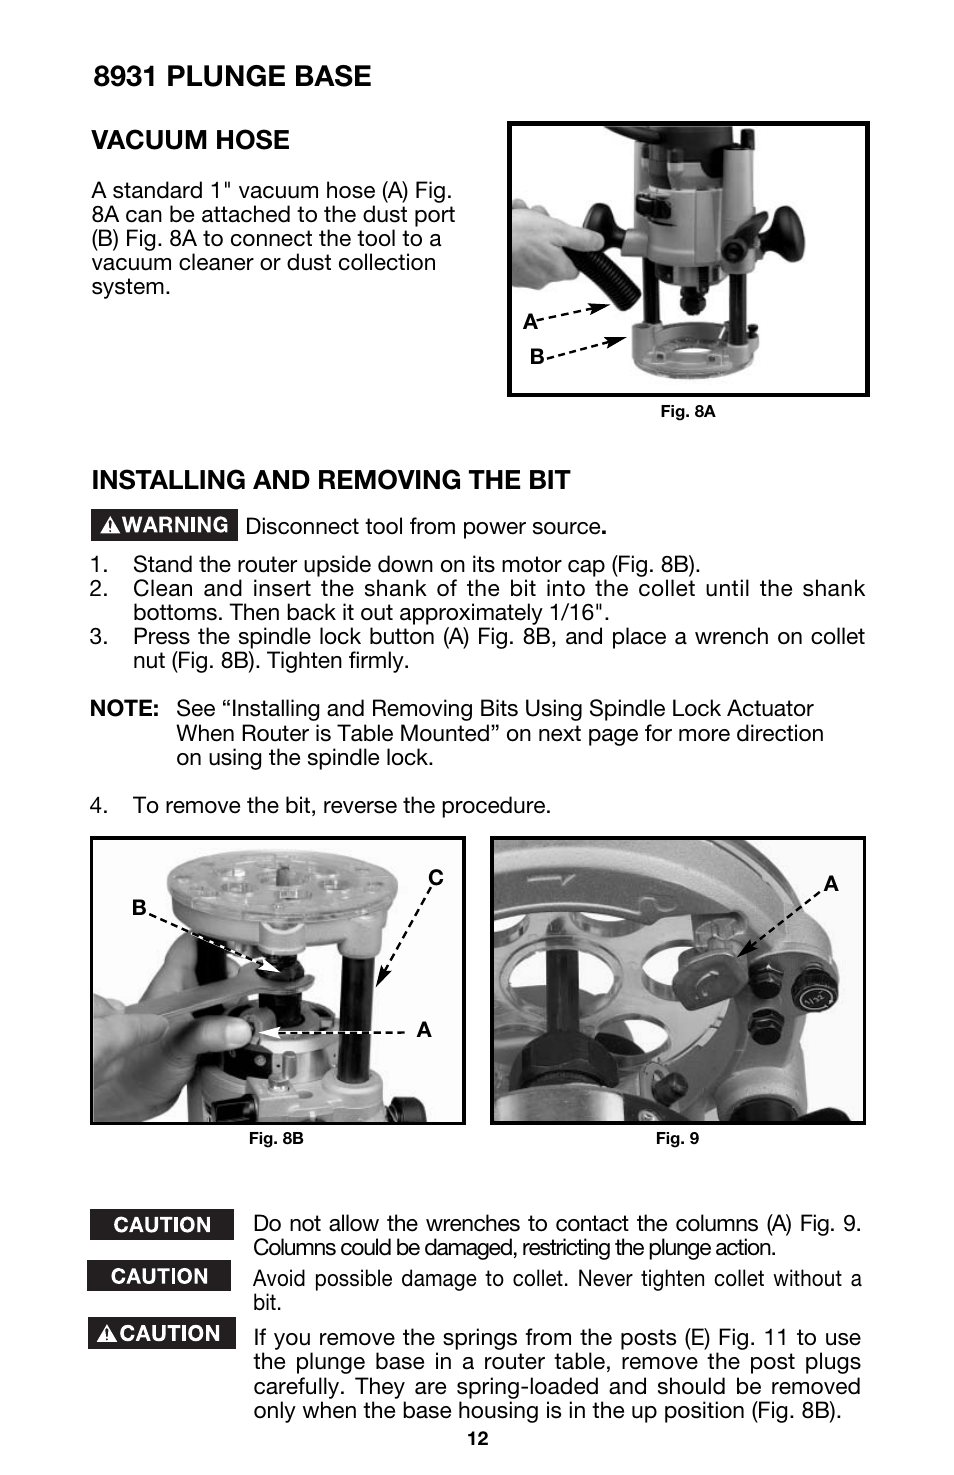 8931 plunge base installing and removing the bit vacuum hose 8931 plunge base installing and removing the bit vacuum hose porter cable 891 user manual page 12 23 greentooth Image collections